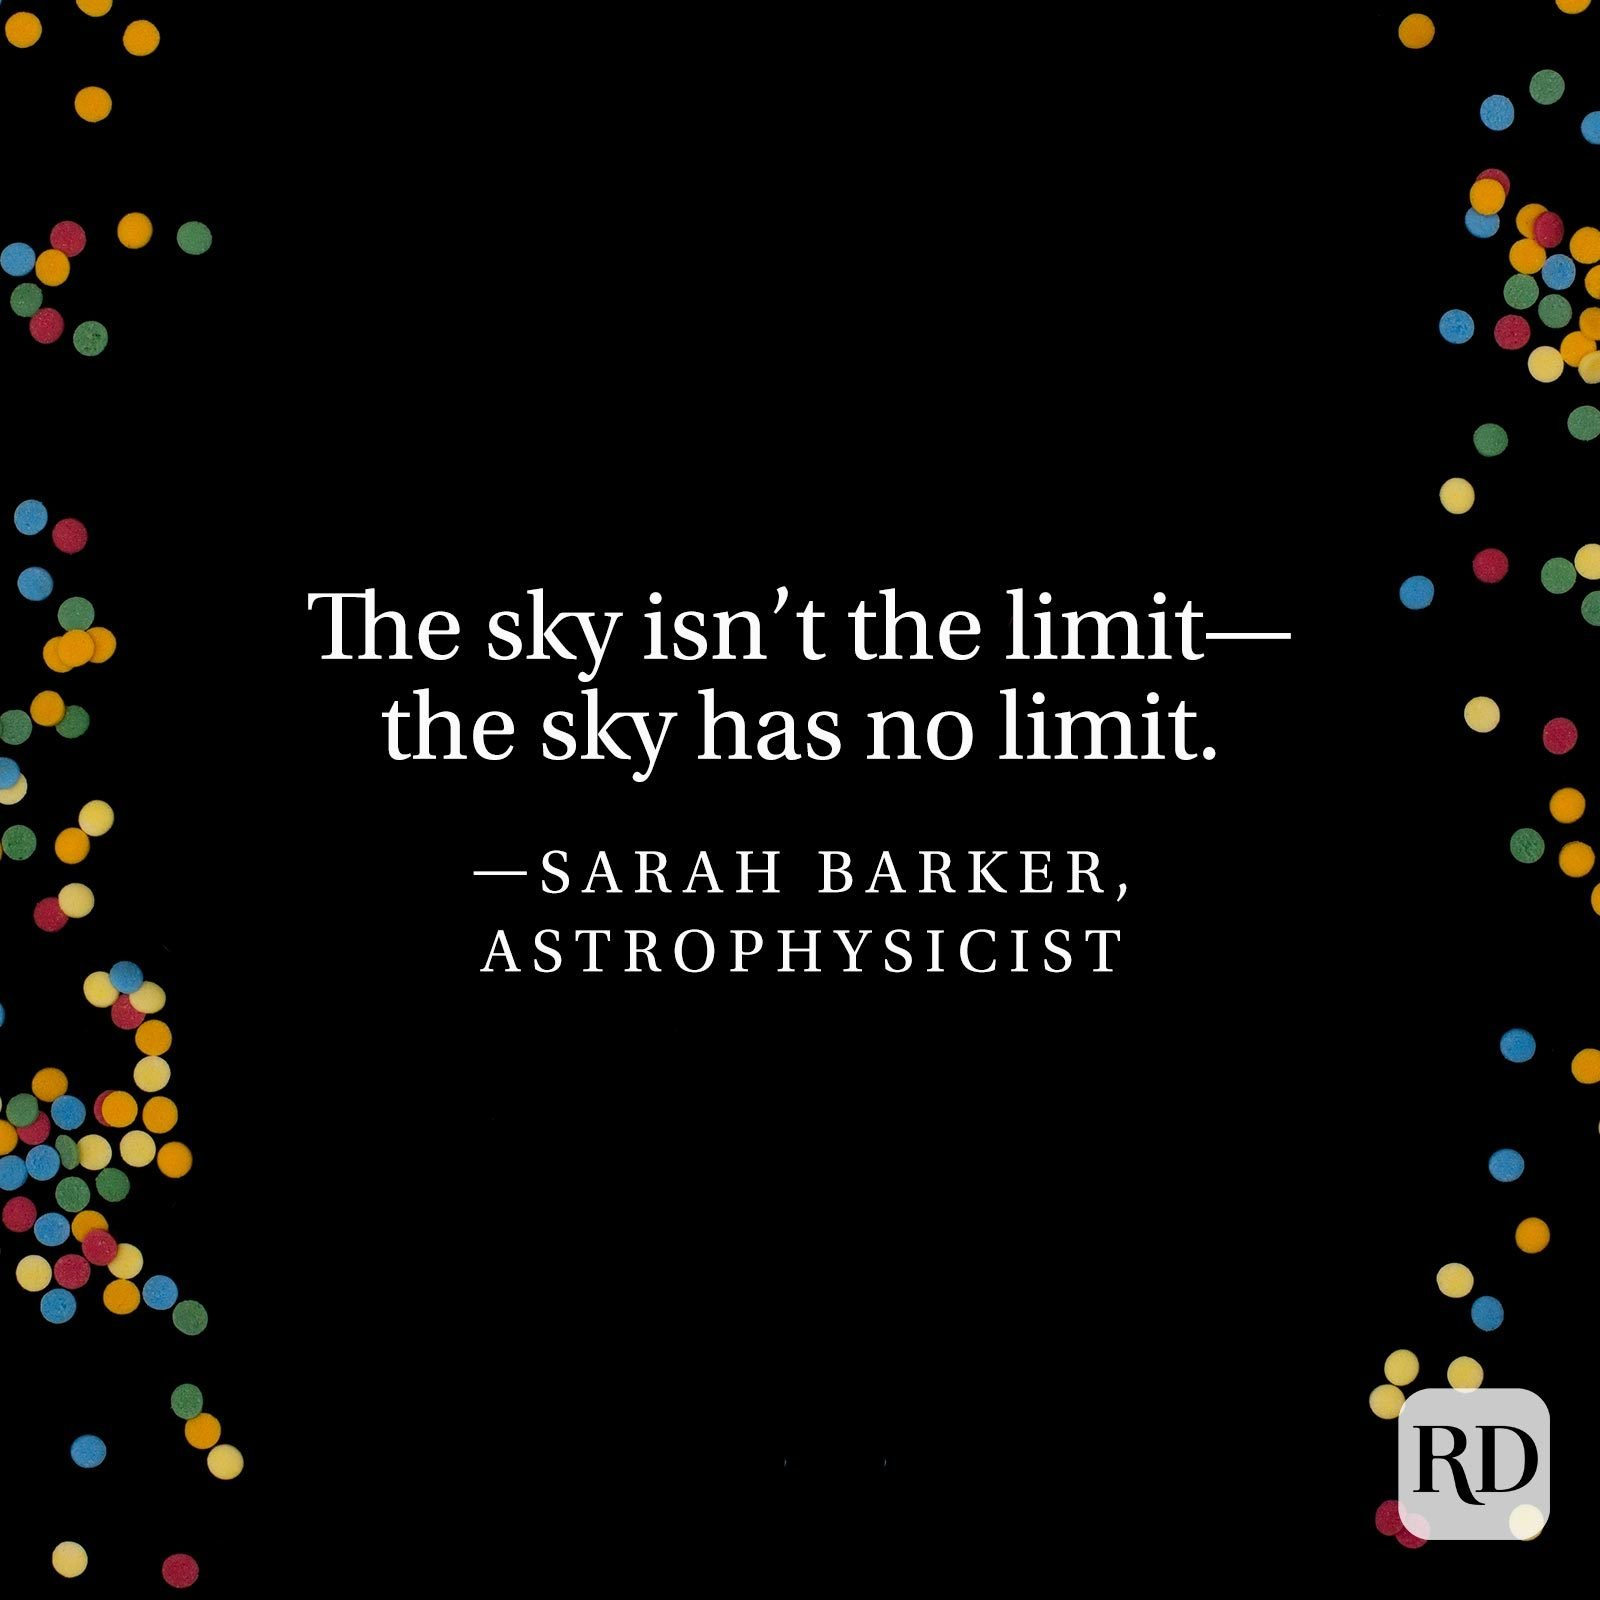 """The sky isn't the limit—the sky has no limit."" —Sarah Barker, astrophysicist"